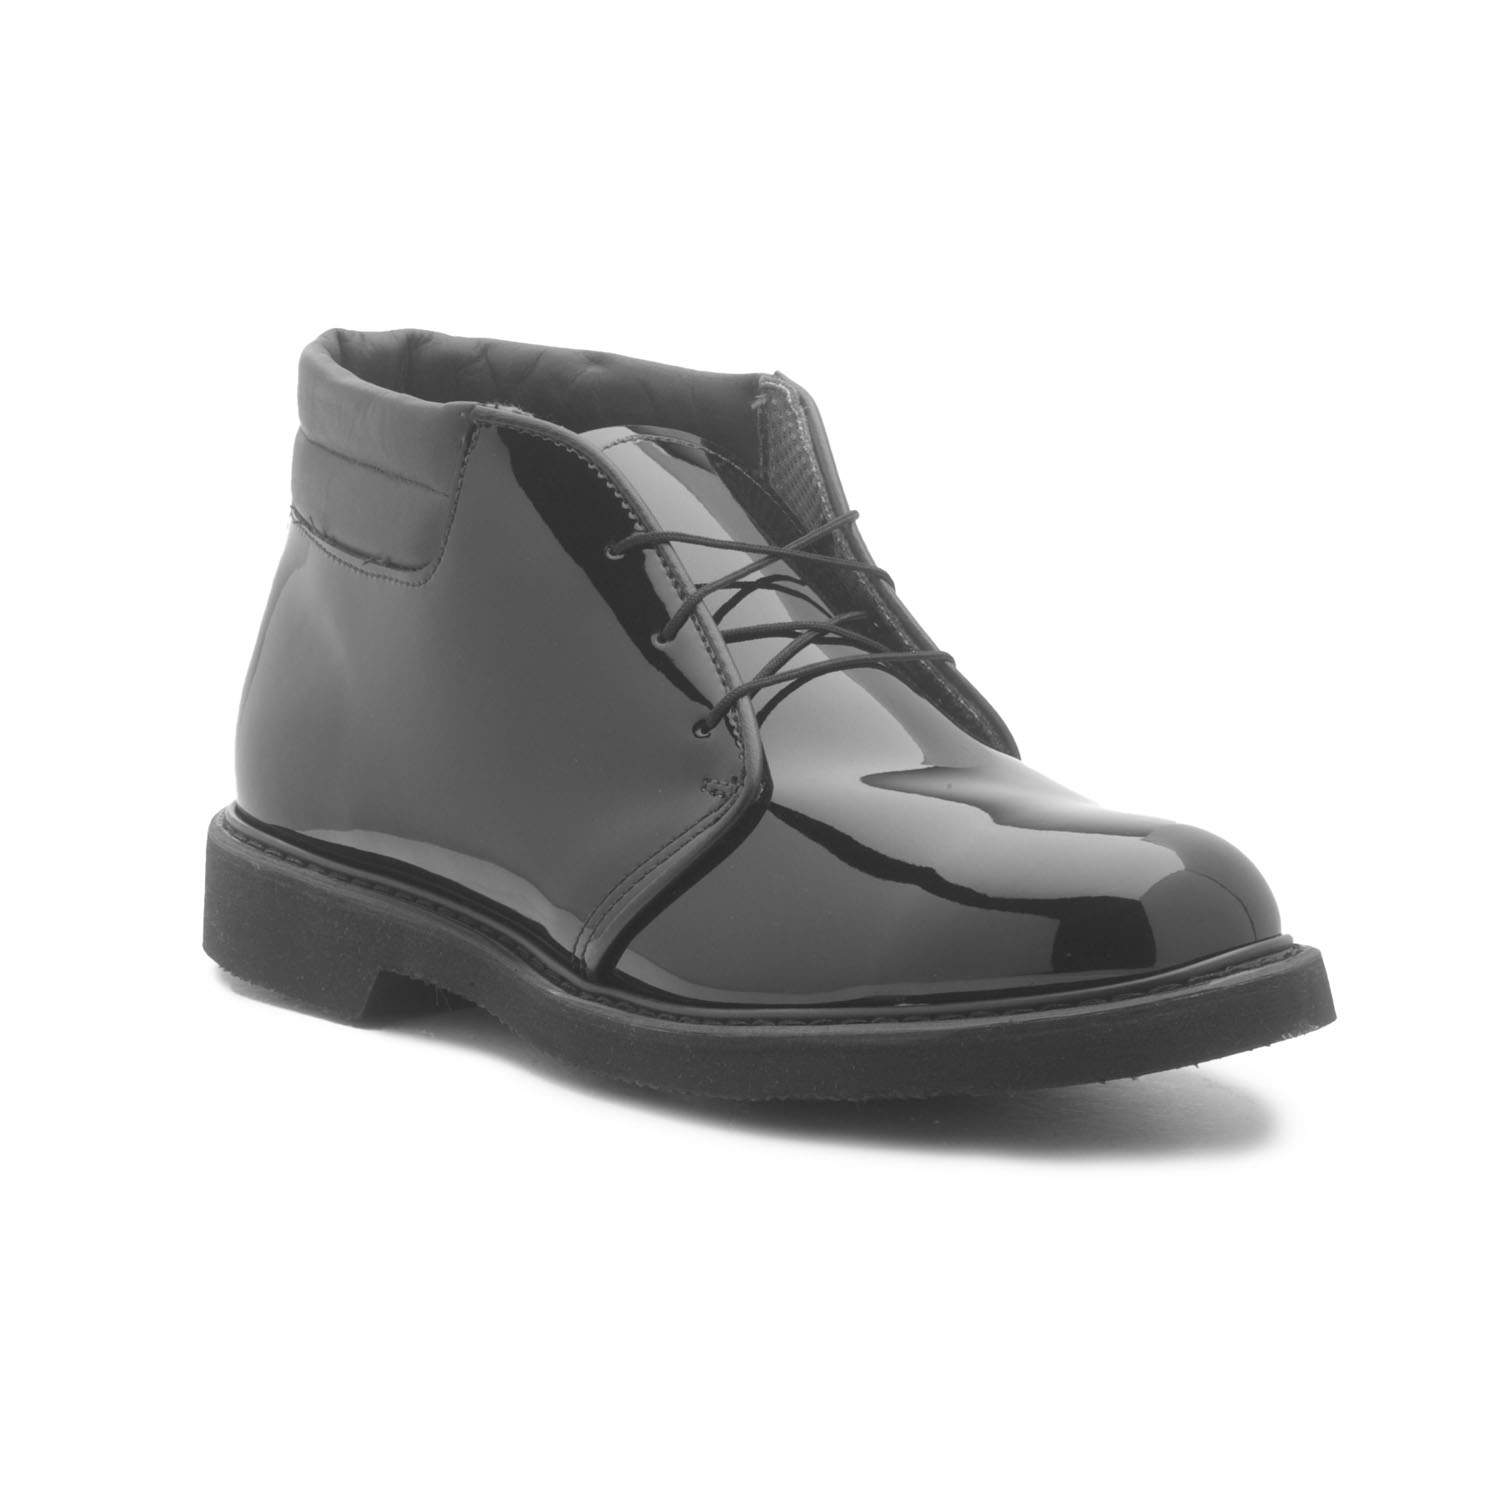 new product 4ff6a 383ad Bates lite boots : 5 percent cash back credit card